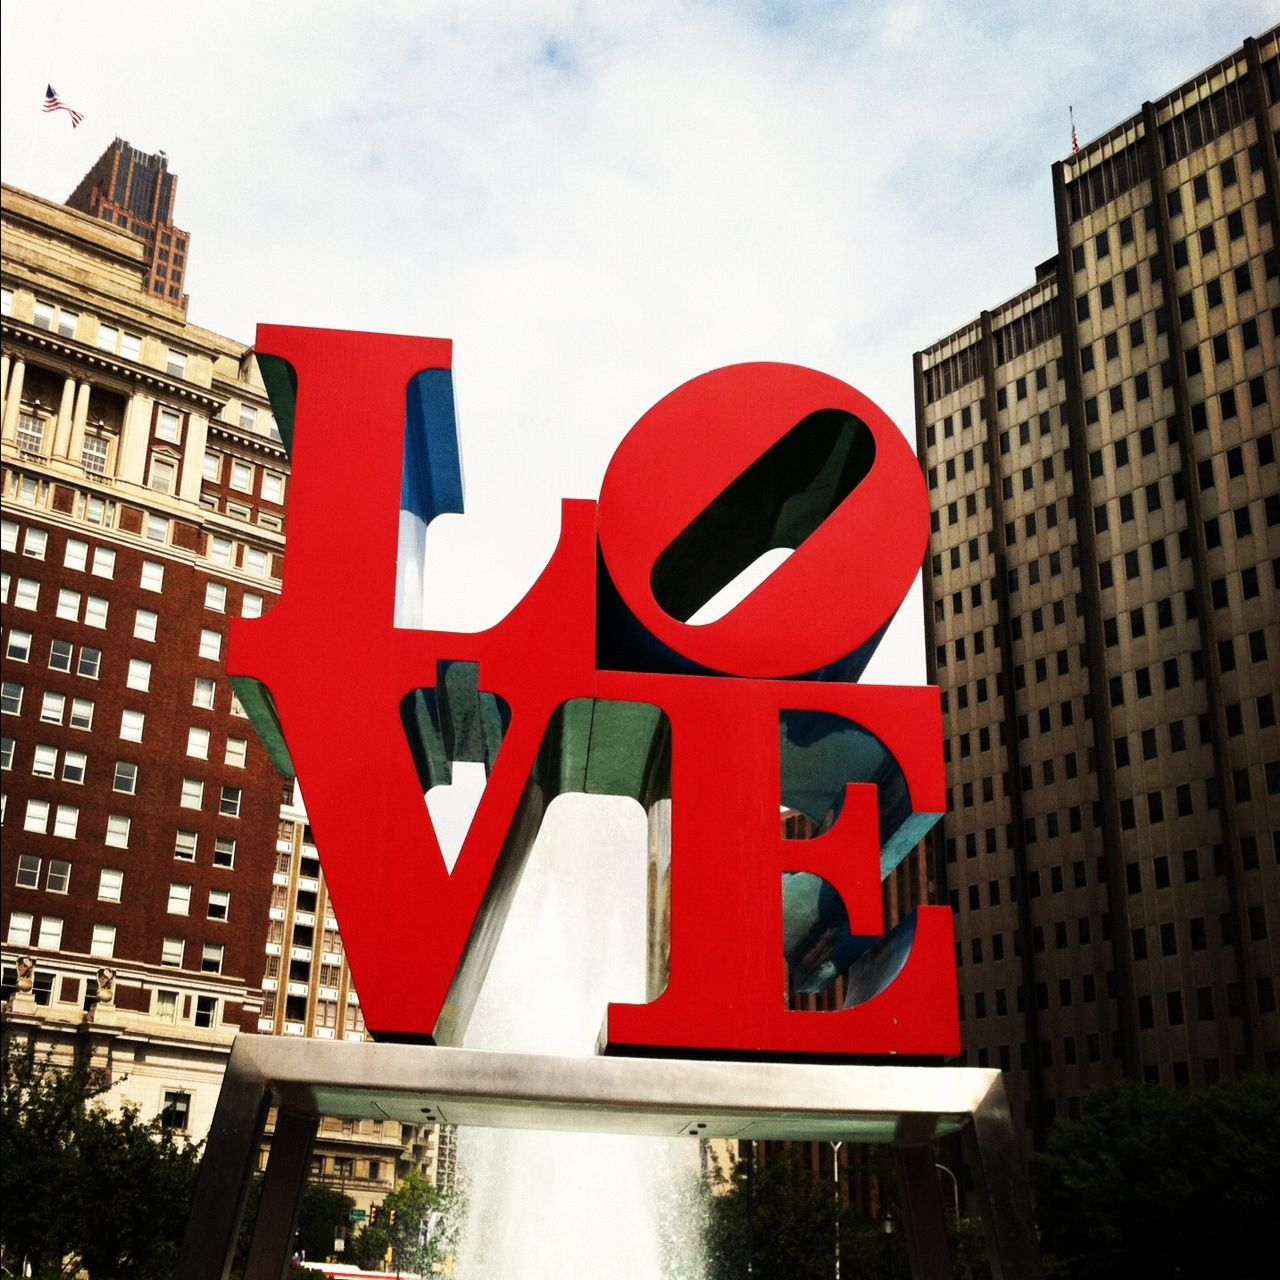 Love Statue Downtown Philly If You Love Outdoor Sculpture And Murals Philadelphia Is A Great City For Both Love Statue Visit Philadelphia Outdoor Sculpture